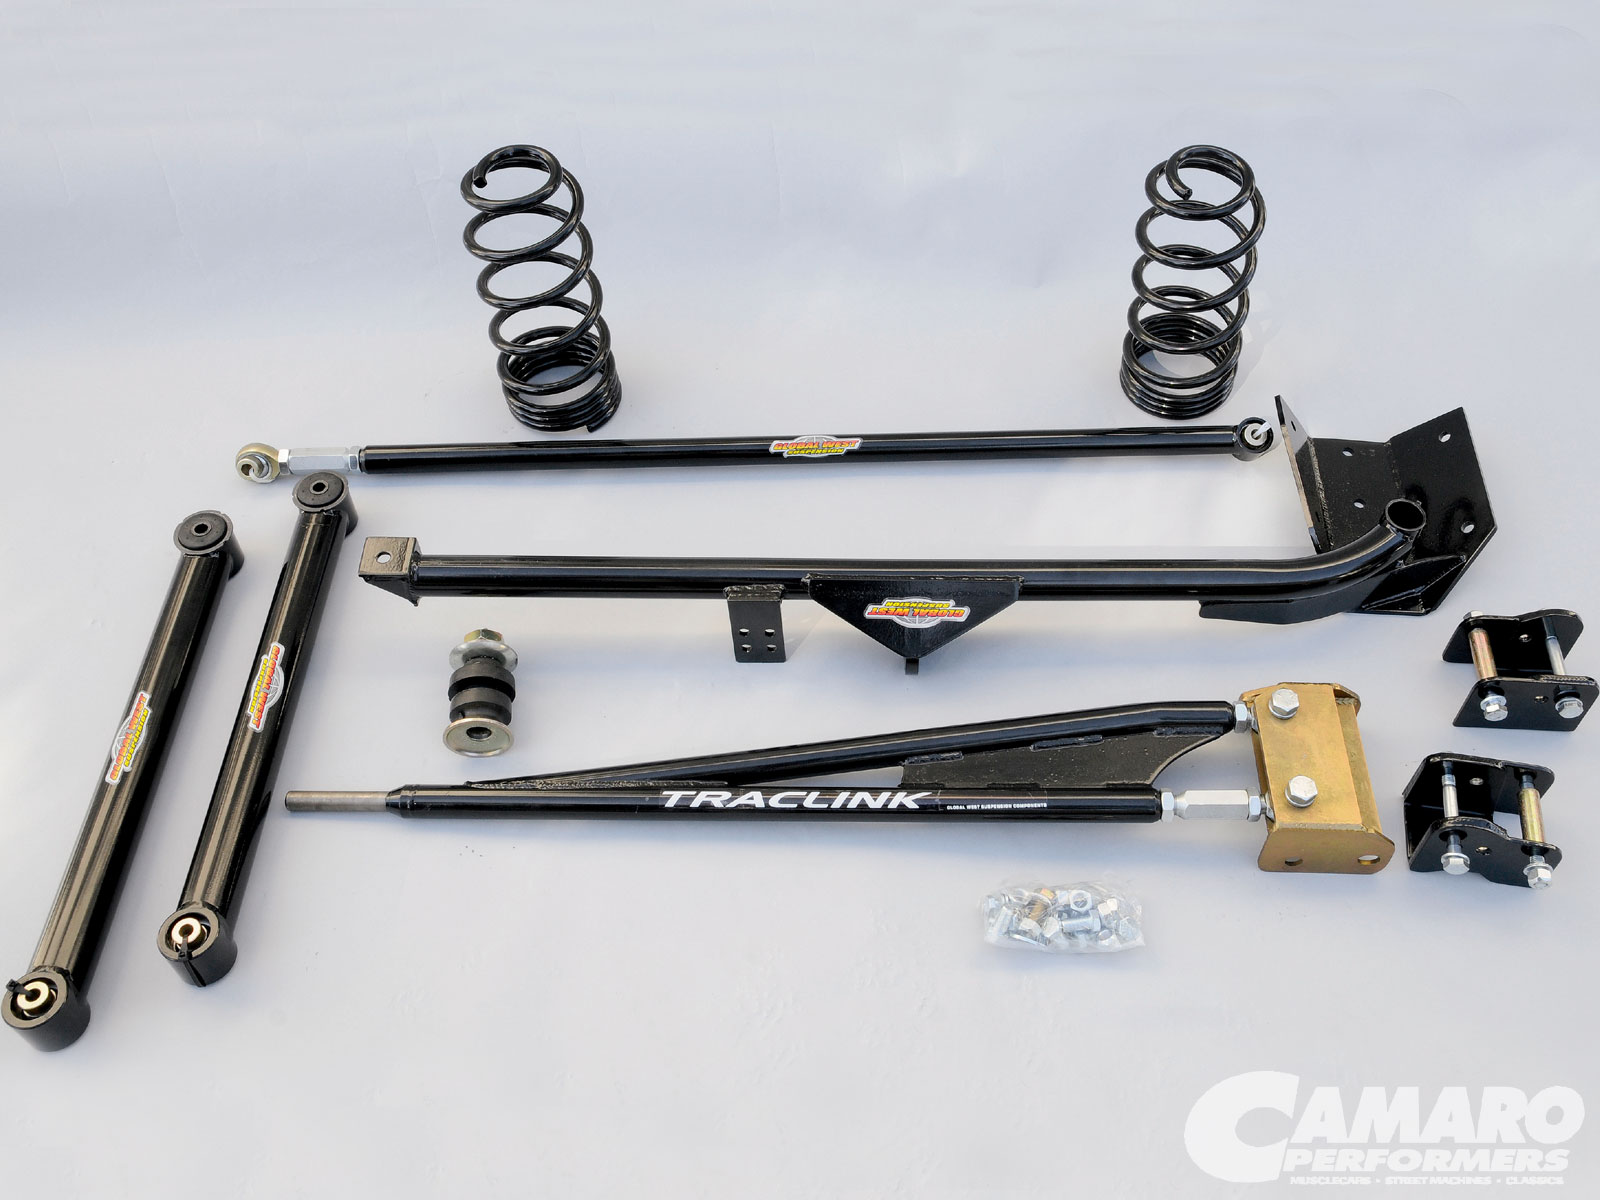 Camp_1007_02_o 2001_chevy_camaro_z28 Suspension_kit